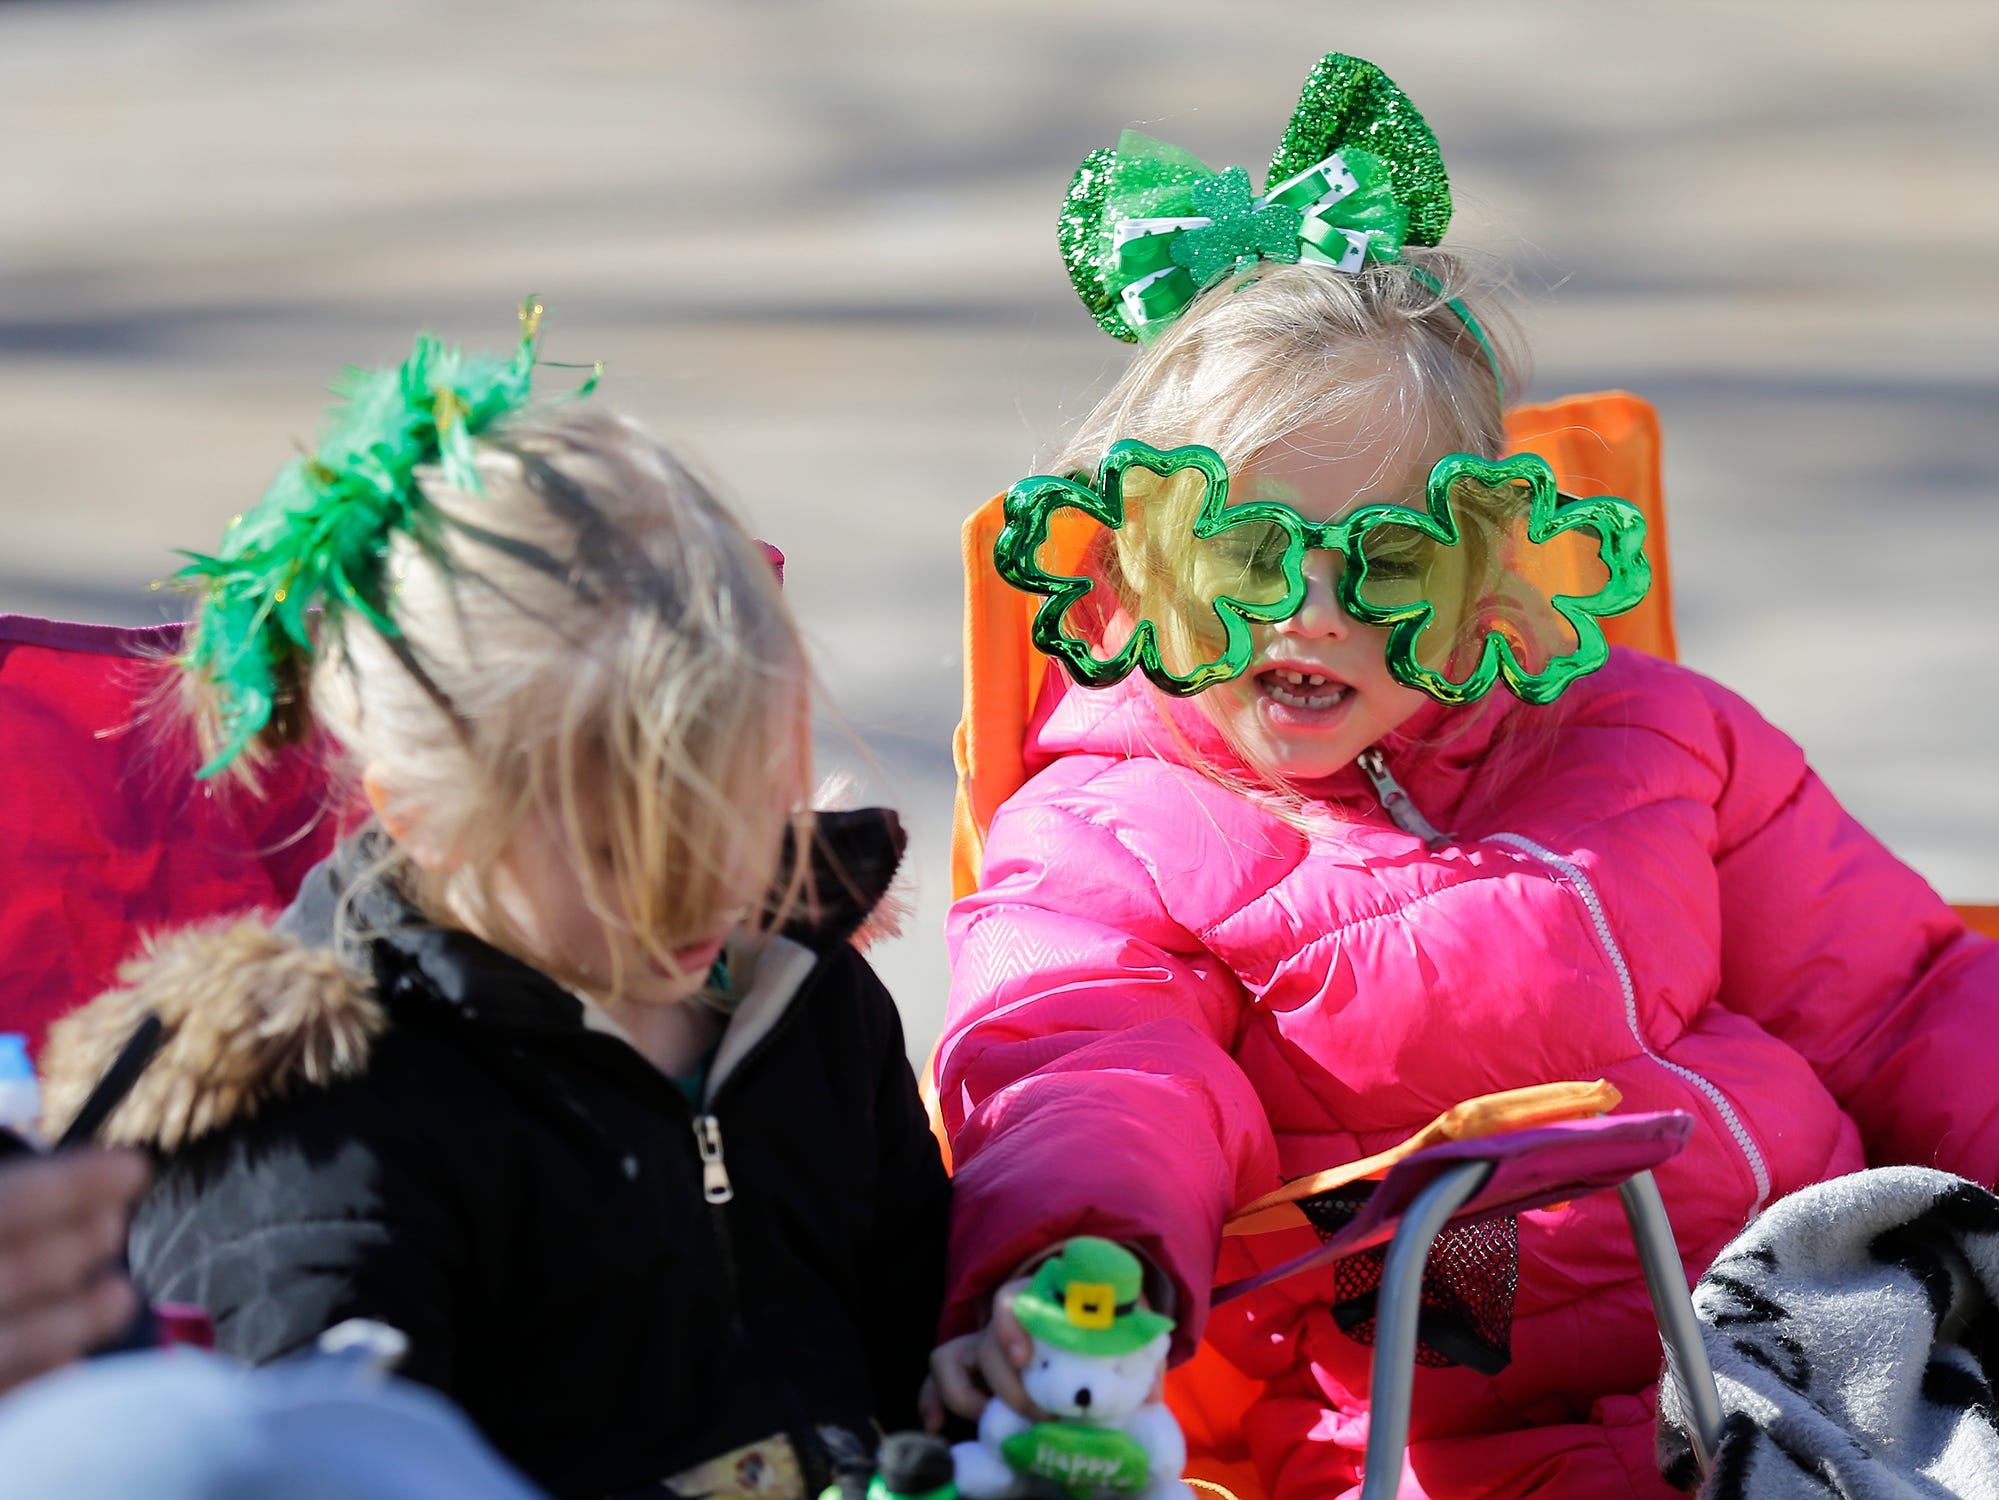 Trinity Seager and Storm Smith play as they wait for the City of Fond du Lac St. Patrick's Day Parade Saturday, March 16, 2019 on Main Street in downtown Fond du Lac. Hundreds of people lined the street to watch over 50 parade participants. Doug Raflik/USA TODAY NETWORK-Wisconsin